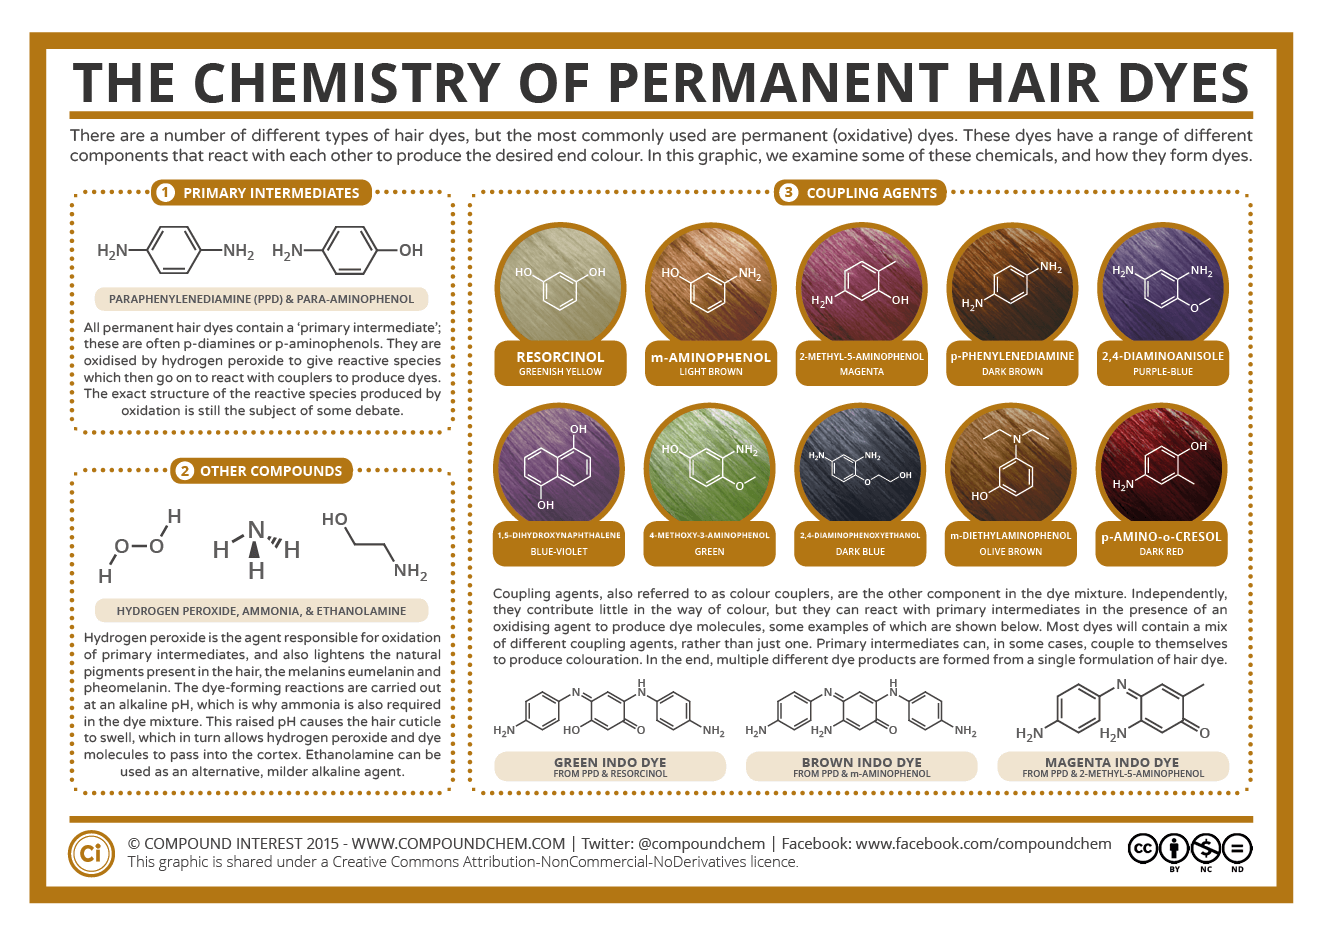 Compound Interest The Chemistry Of Permanent Hair Dyes